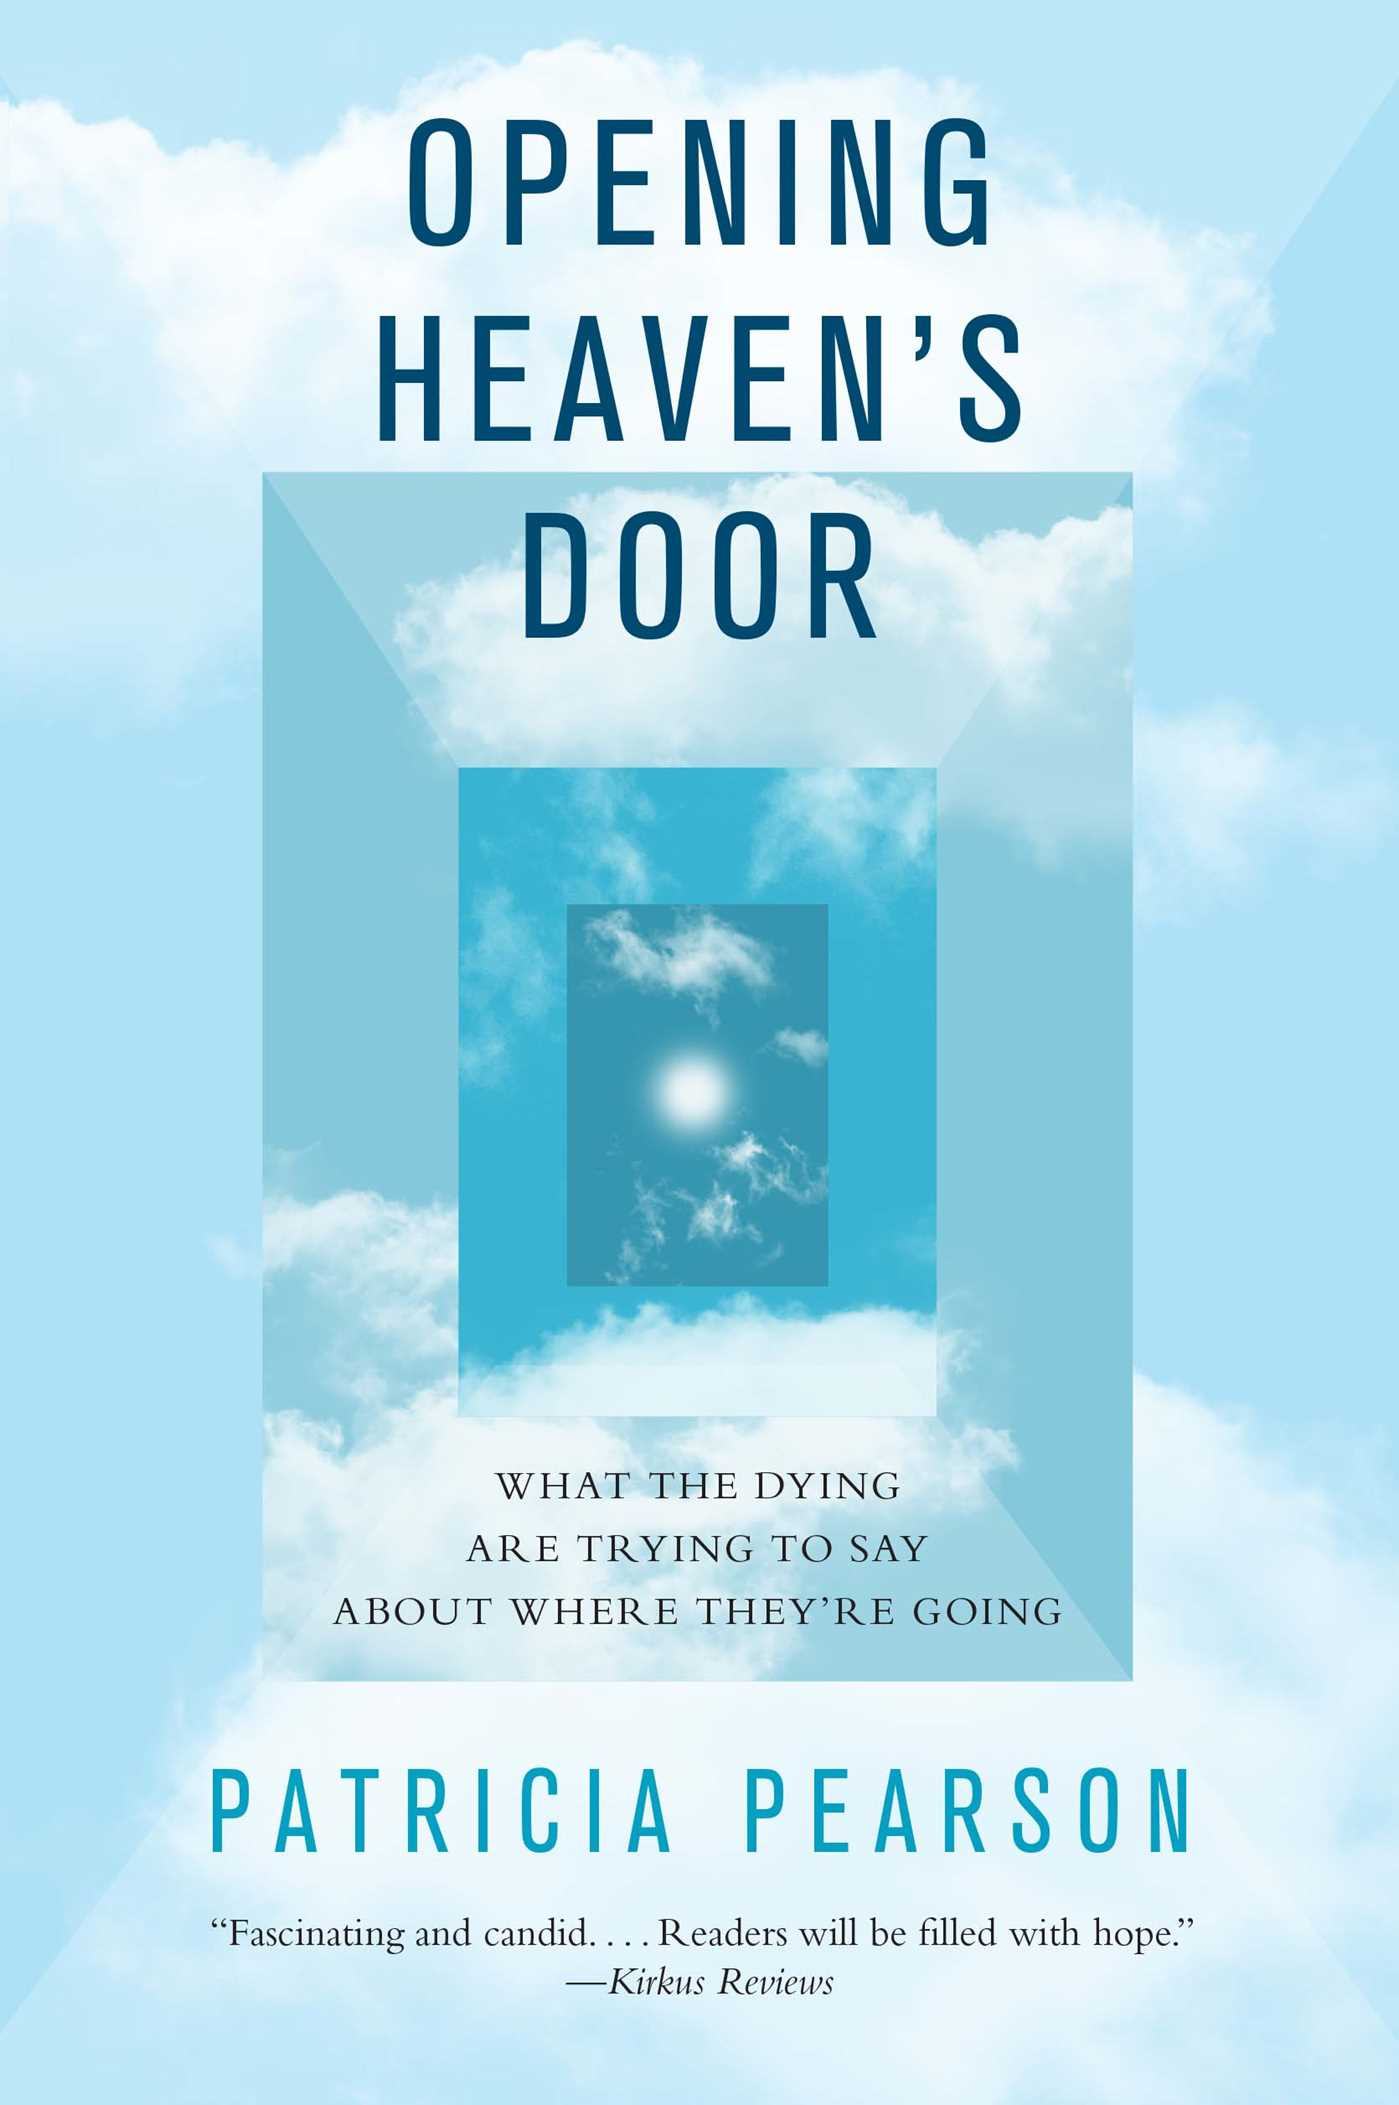 Opening heavens door 9781476757070 hr